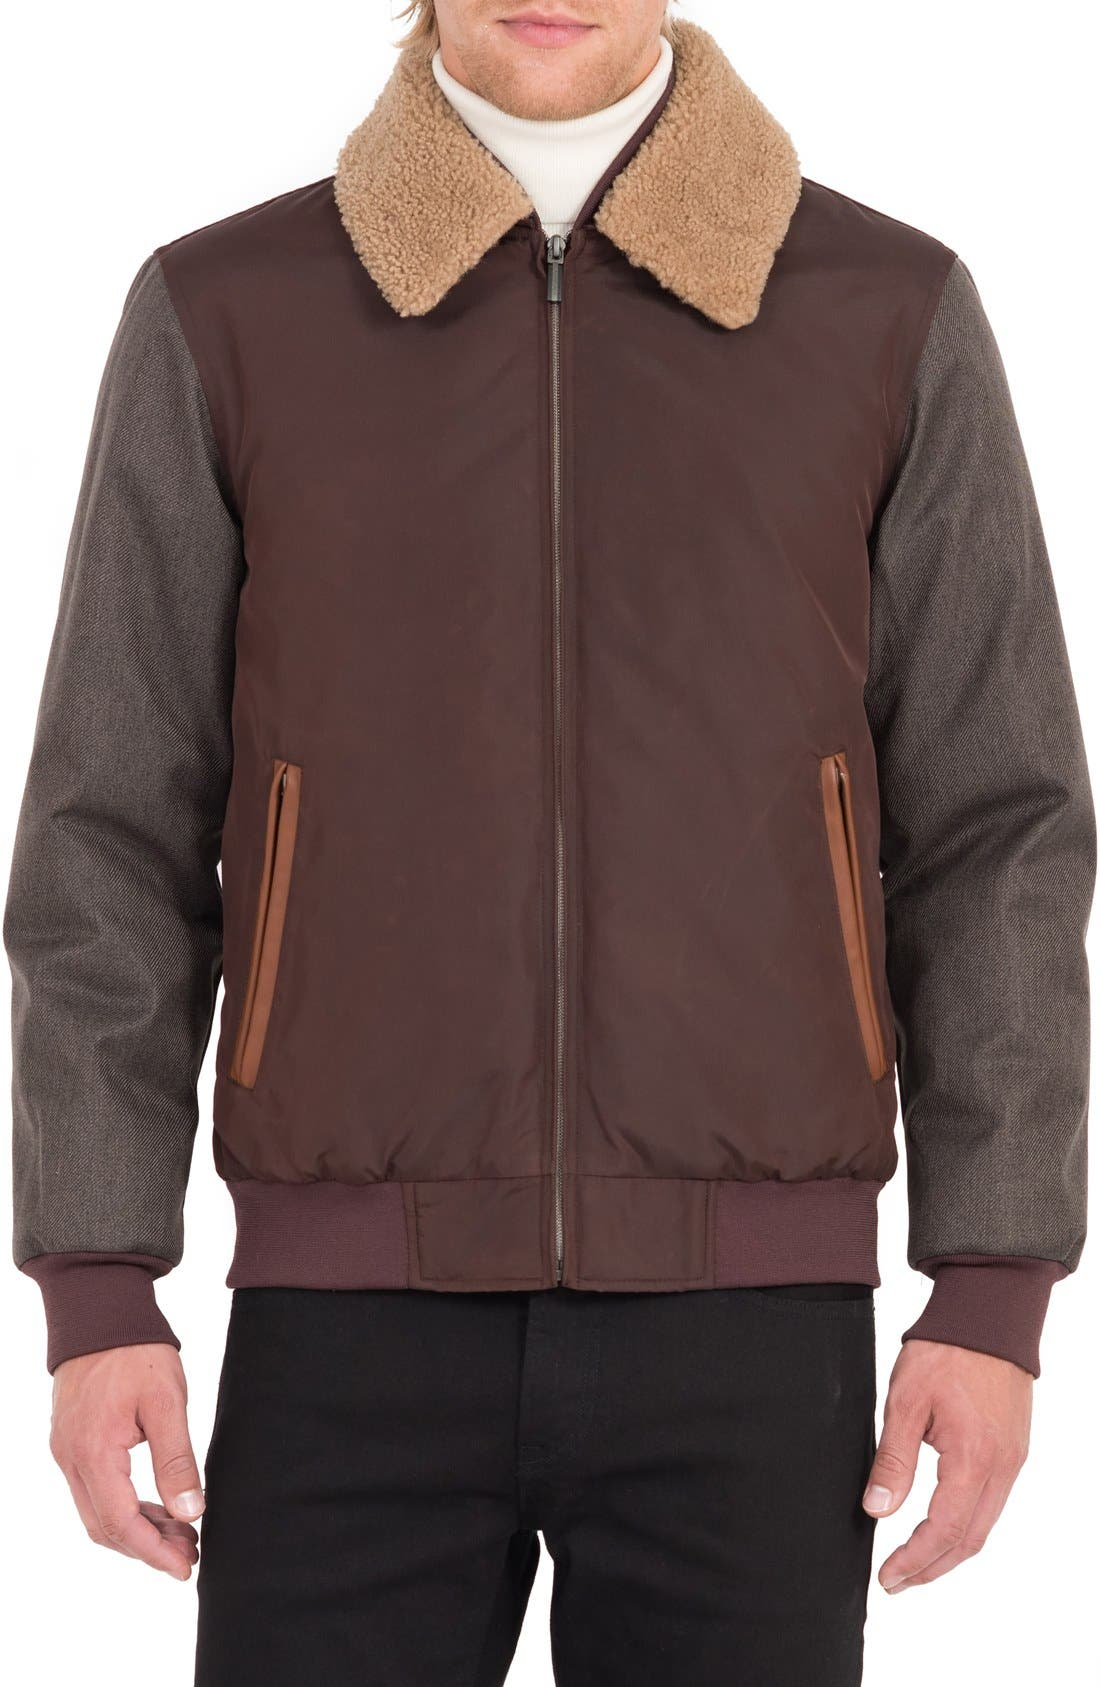 Main Image - RAINFOREST Waxed Nylon Jacket with Faux Shearling Collar